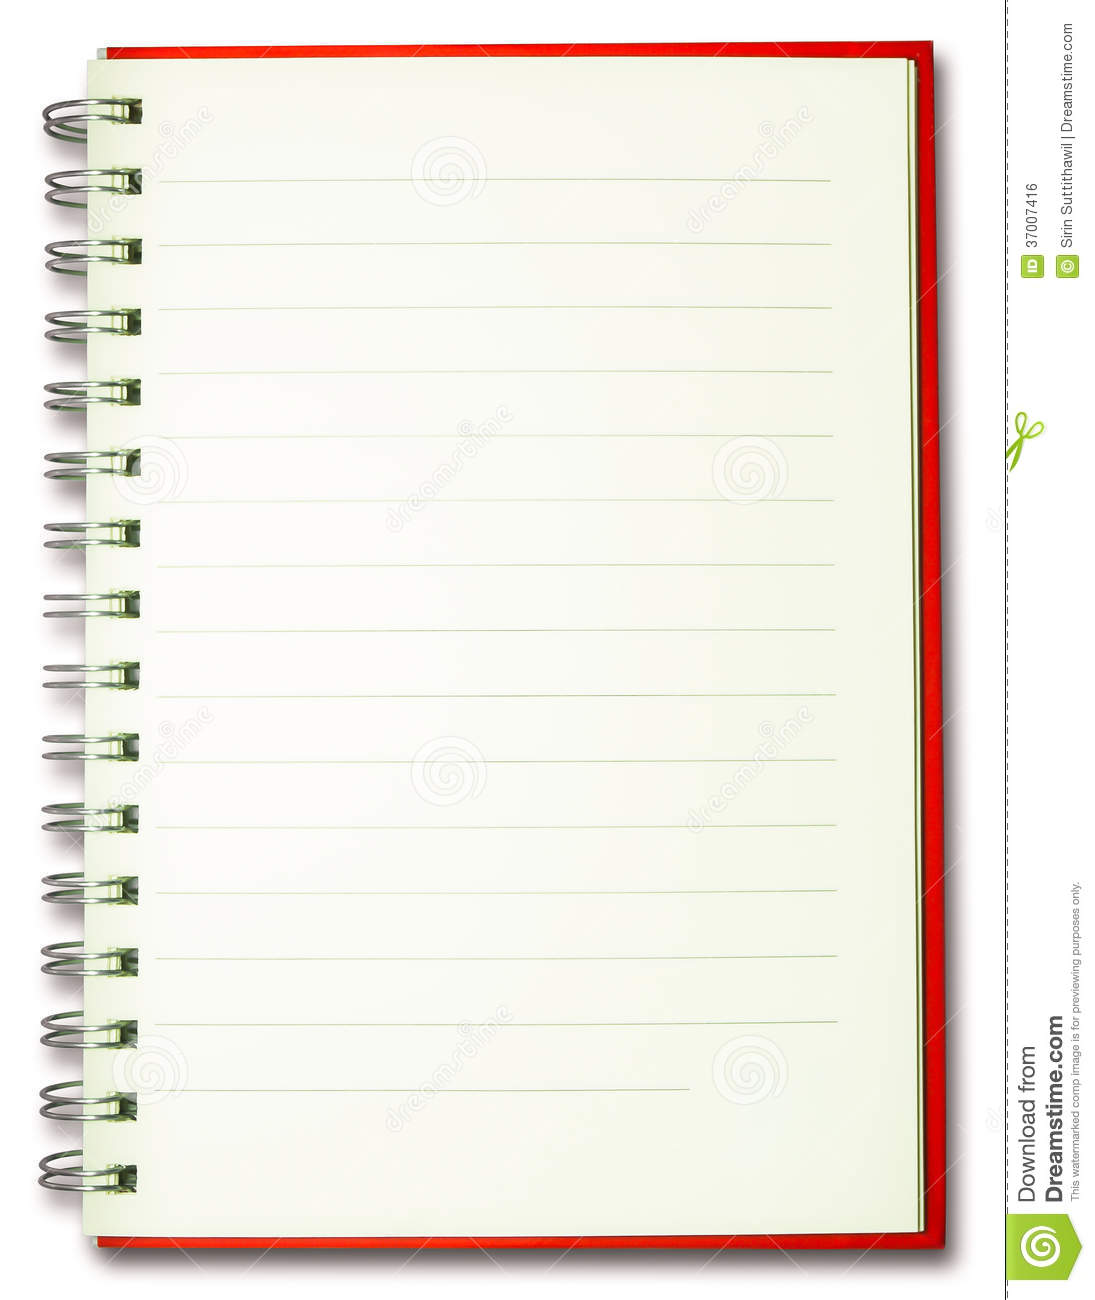 Notebook Cover Background : Blank plain line spiral red cover notebook isolate stock